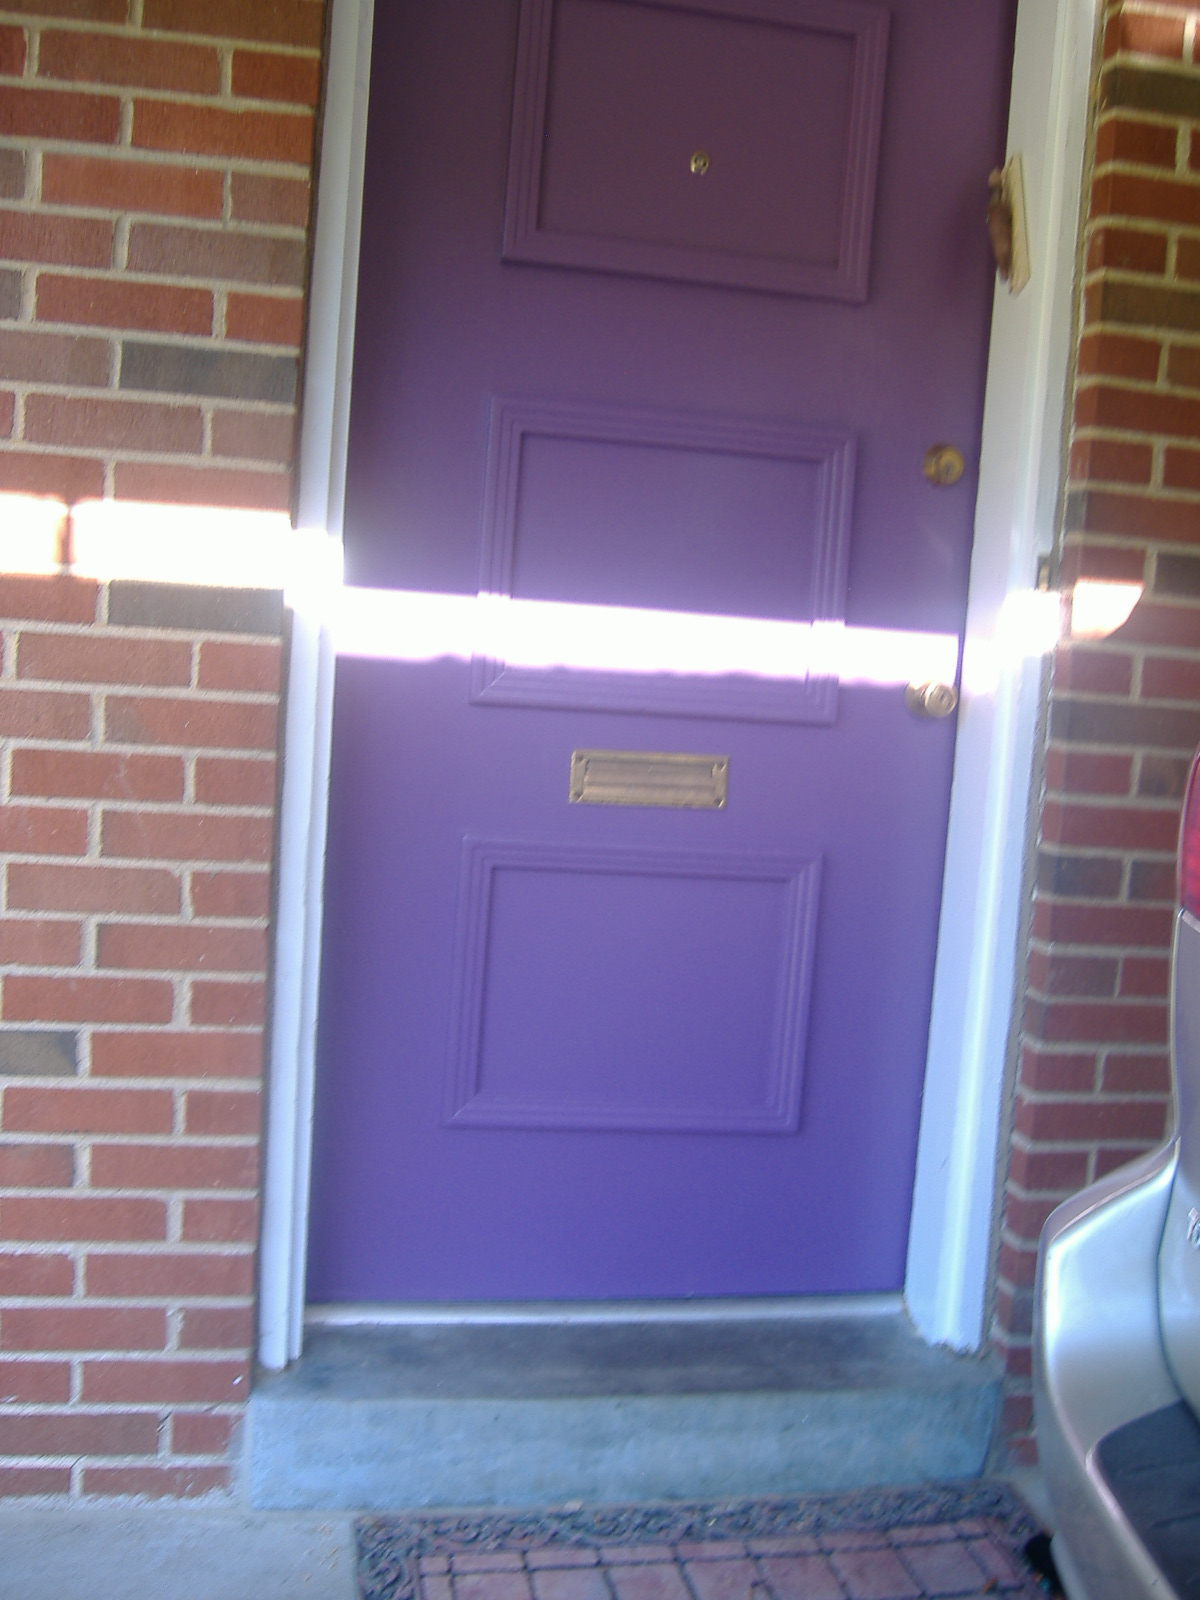 1600 #275BA4 The Rocking Purple Front Door!! wallpaper Purple Front Doors 47051200